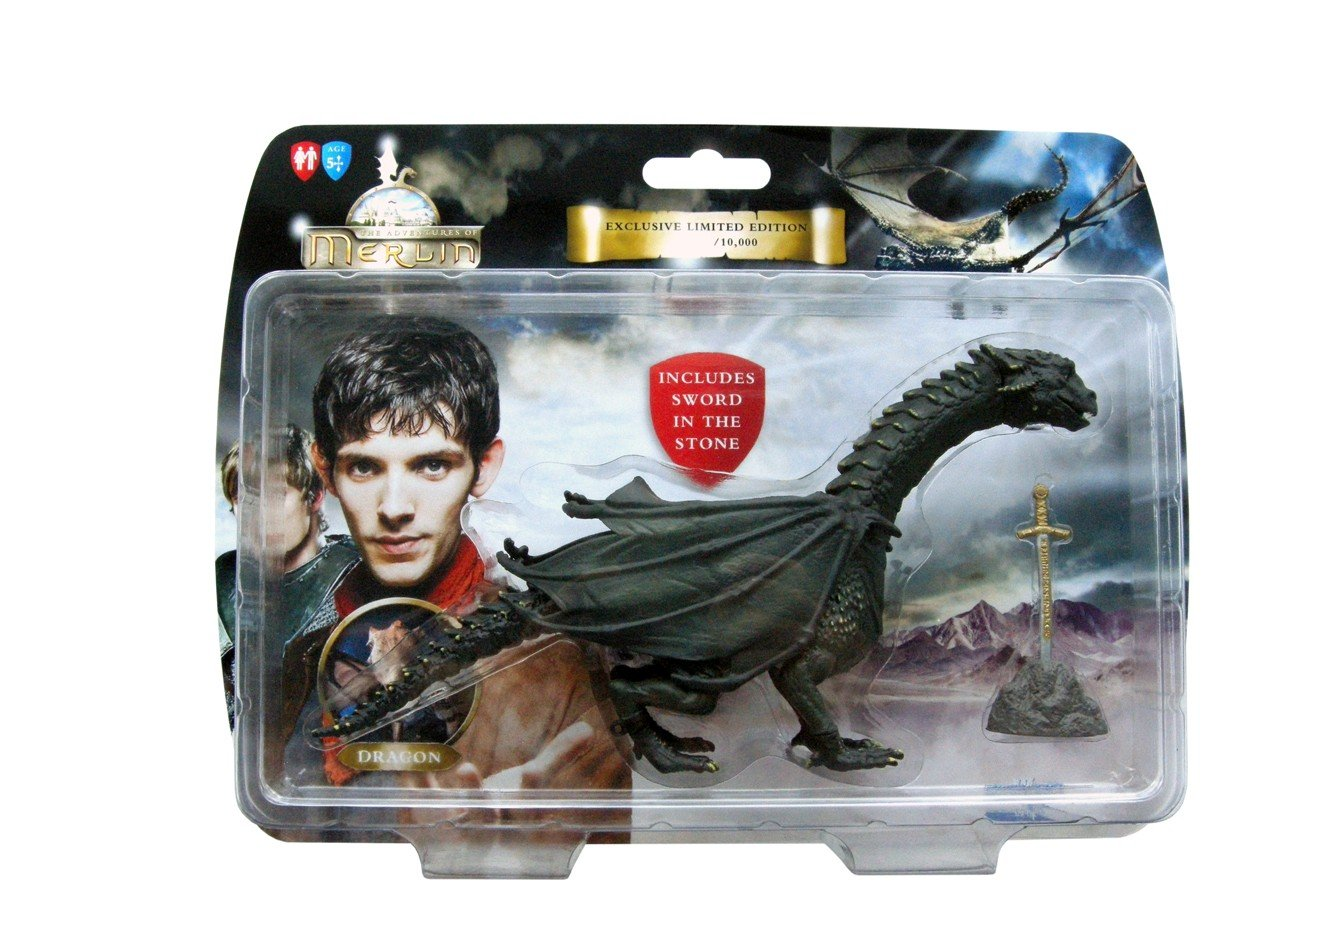 The Adventures of Merlin Dragon Figurine